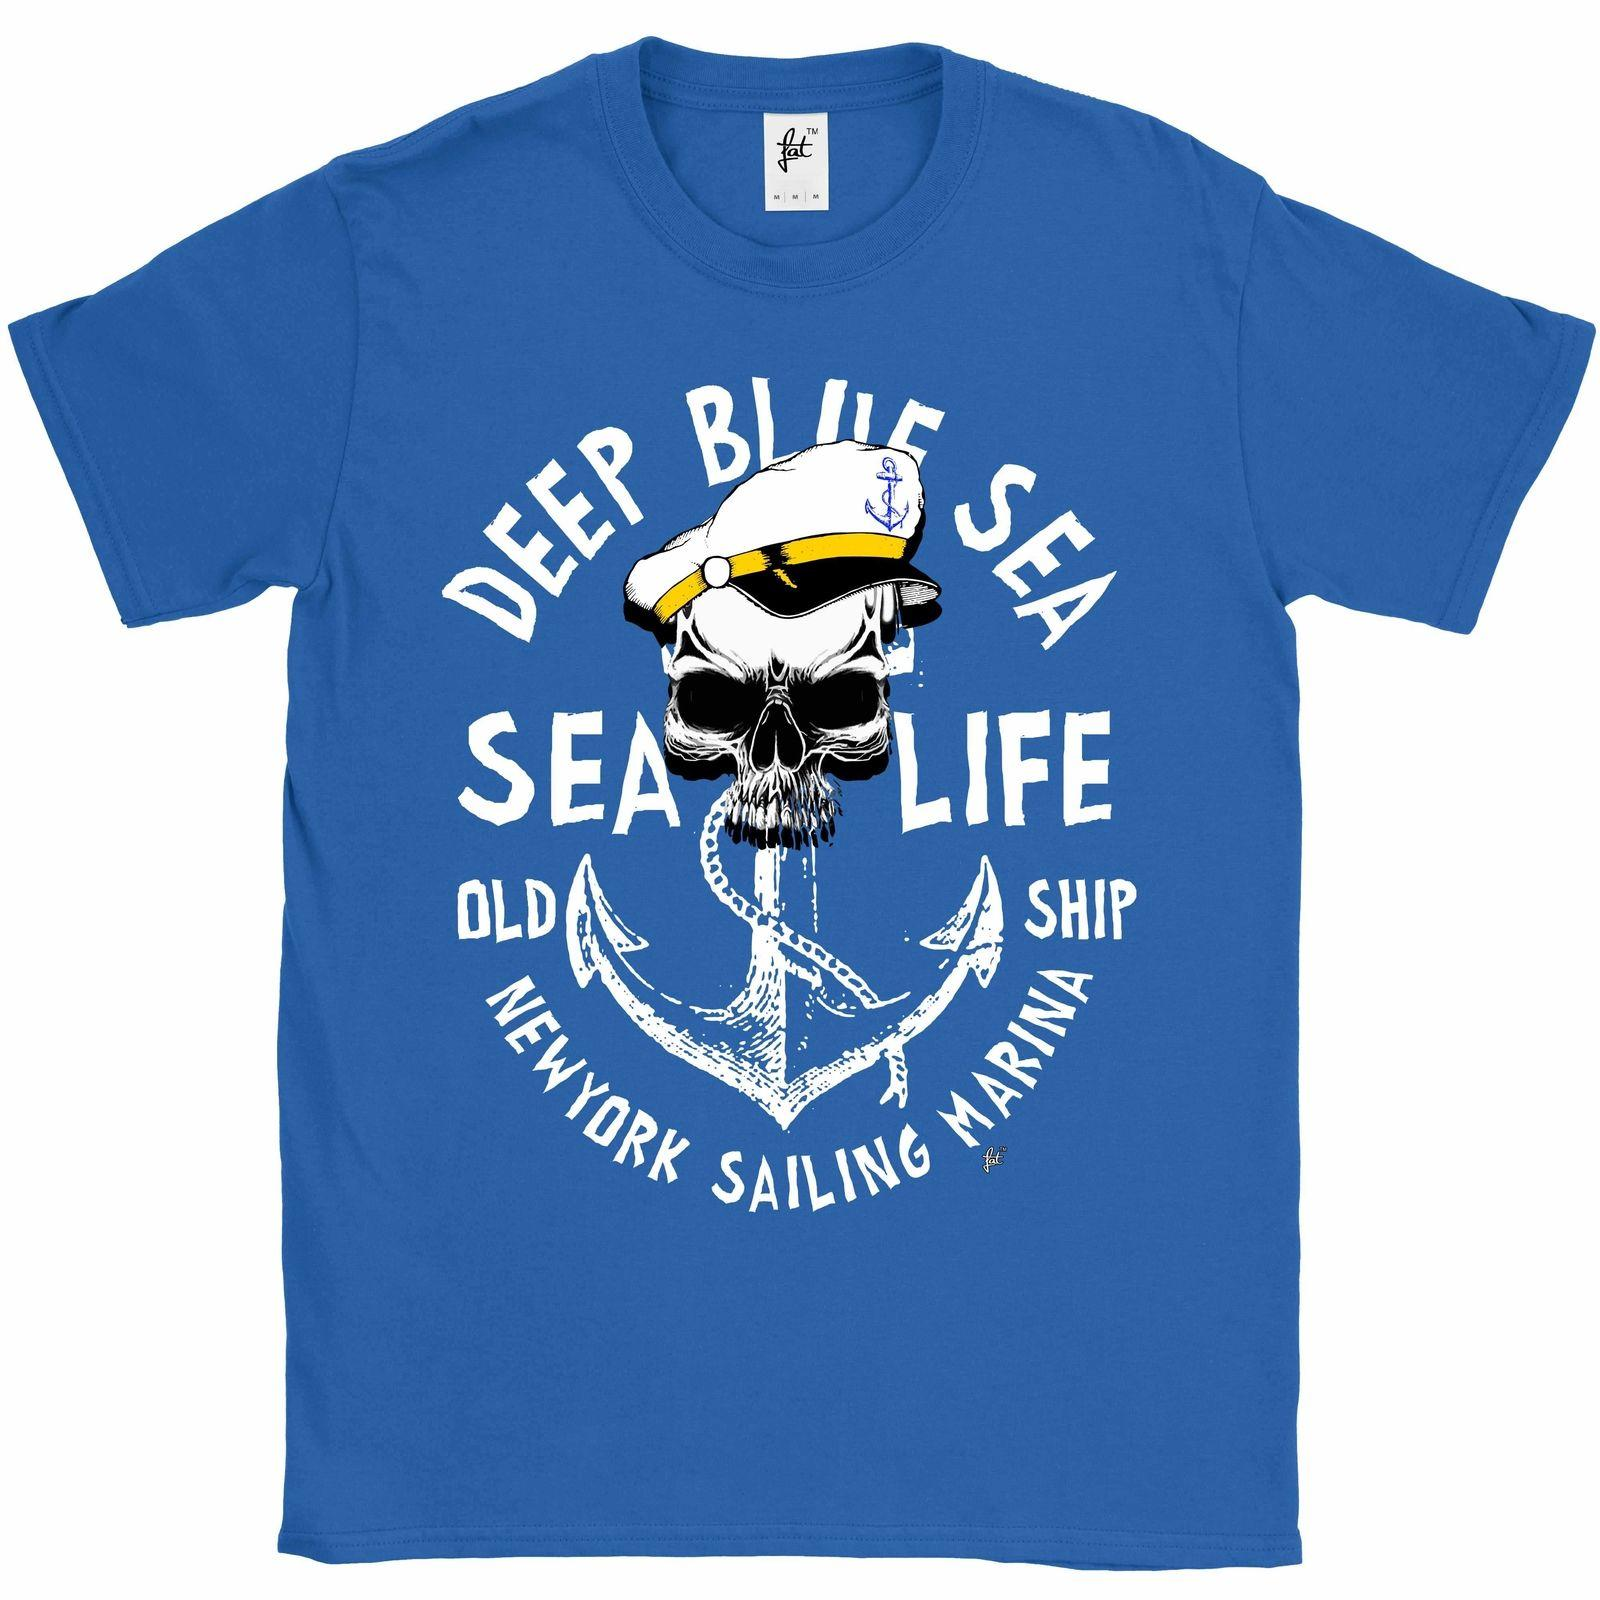 Deep Blue Sea Life Captain Skull   Anchor Mens T Shirt Funny Casual Tee  Fitted Shirts T Shirt Sale From Fatcuckoo 2846223c90f1